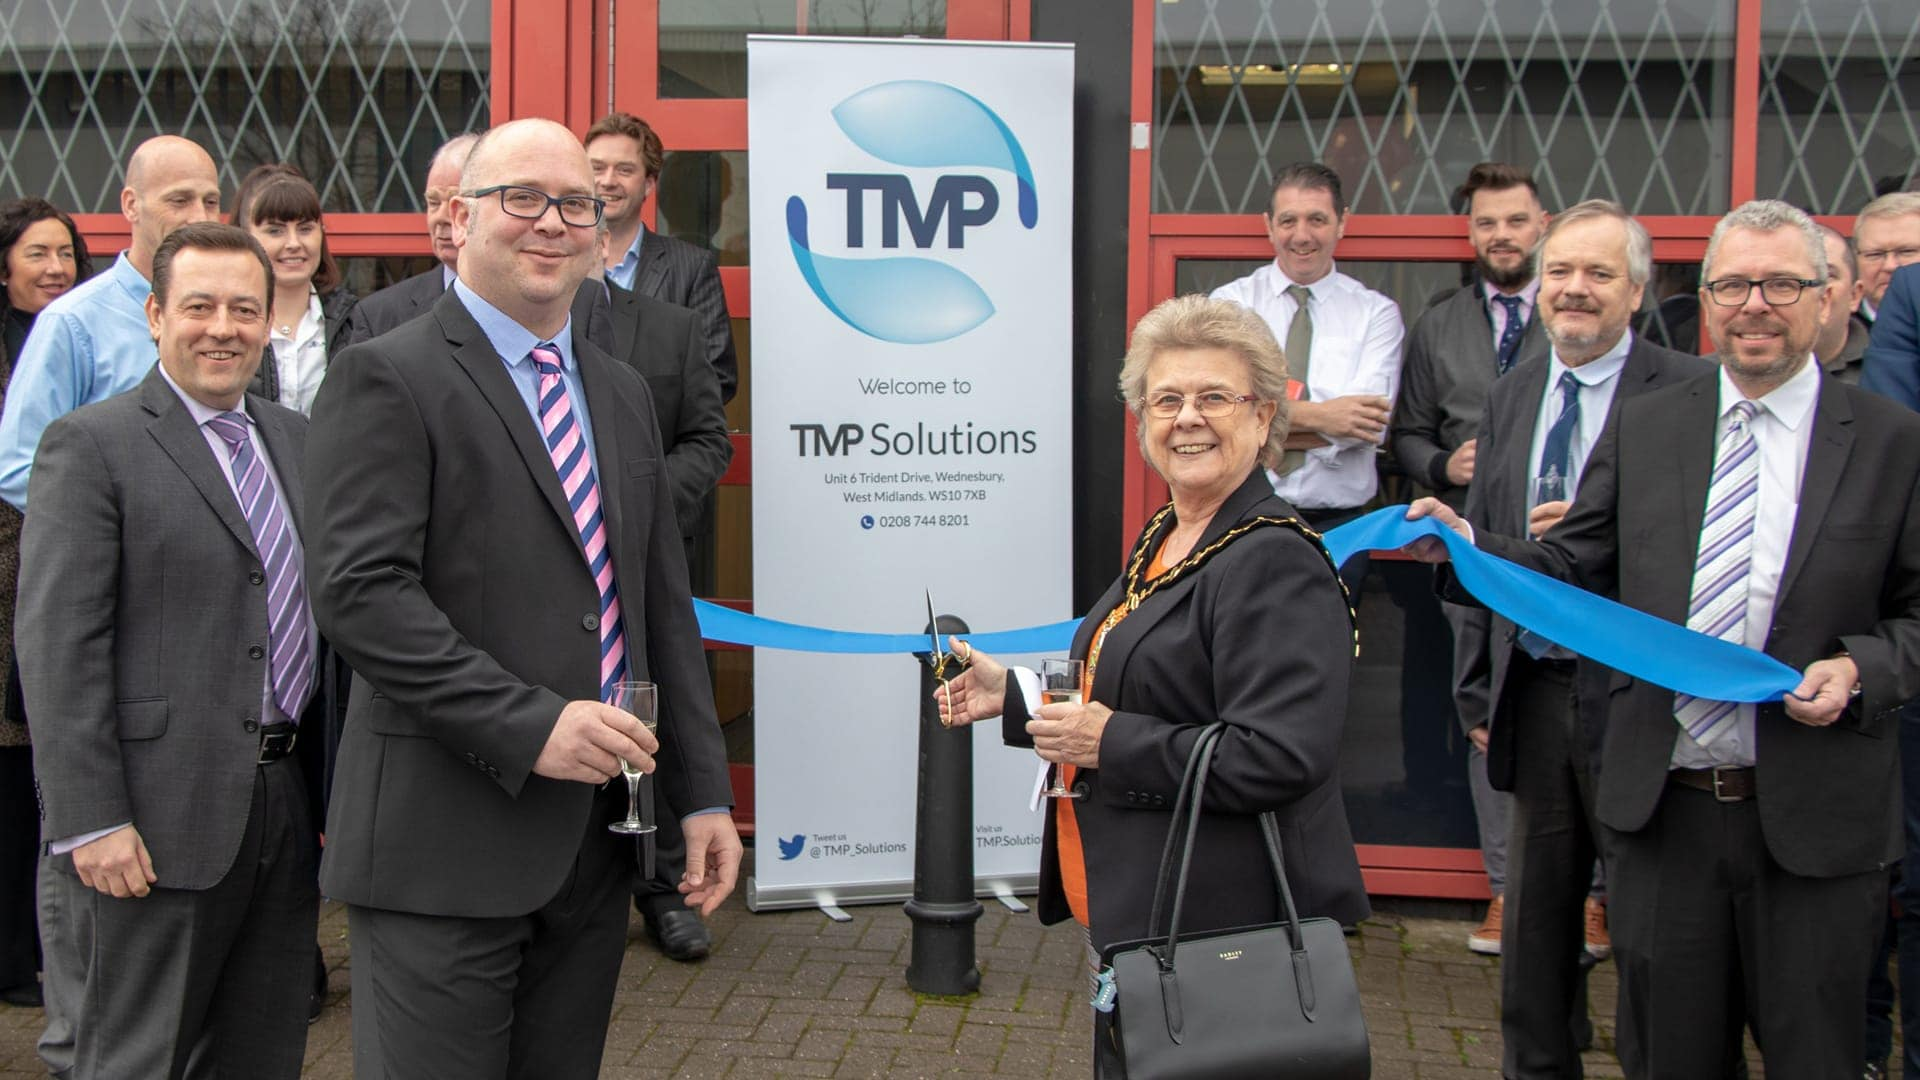 TMP Solutions Grand Opening Wednesbury